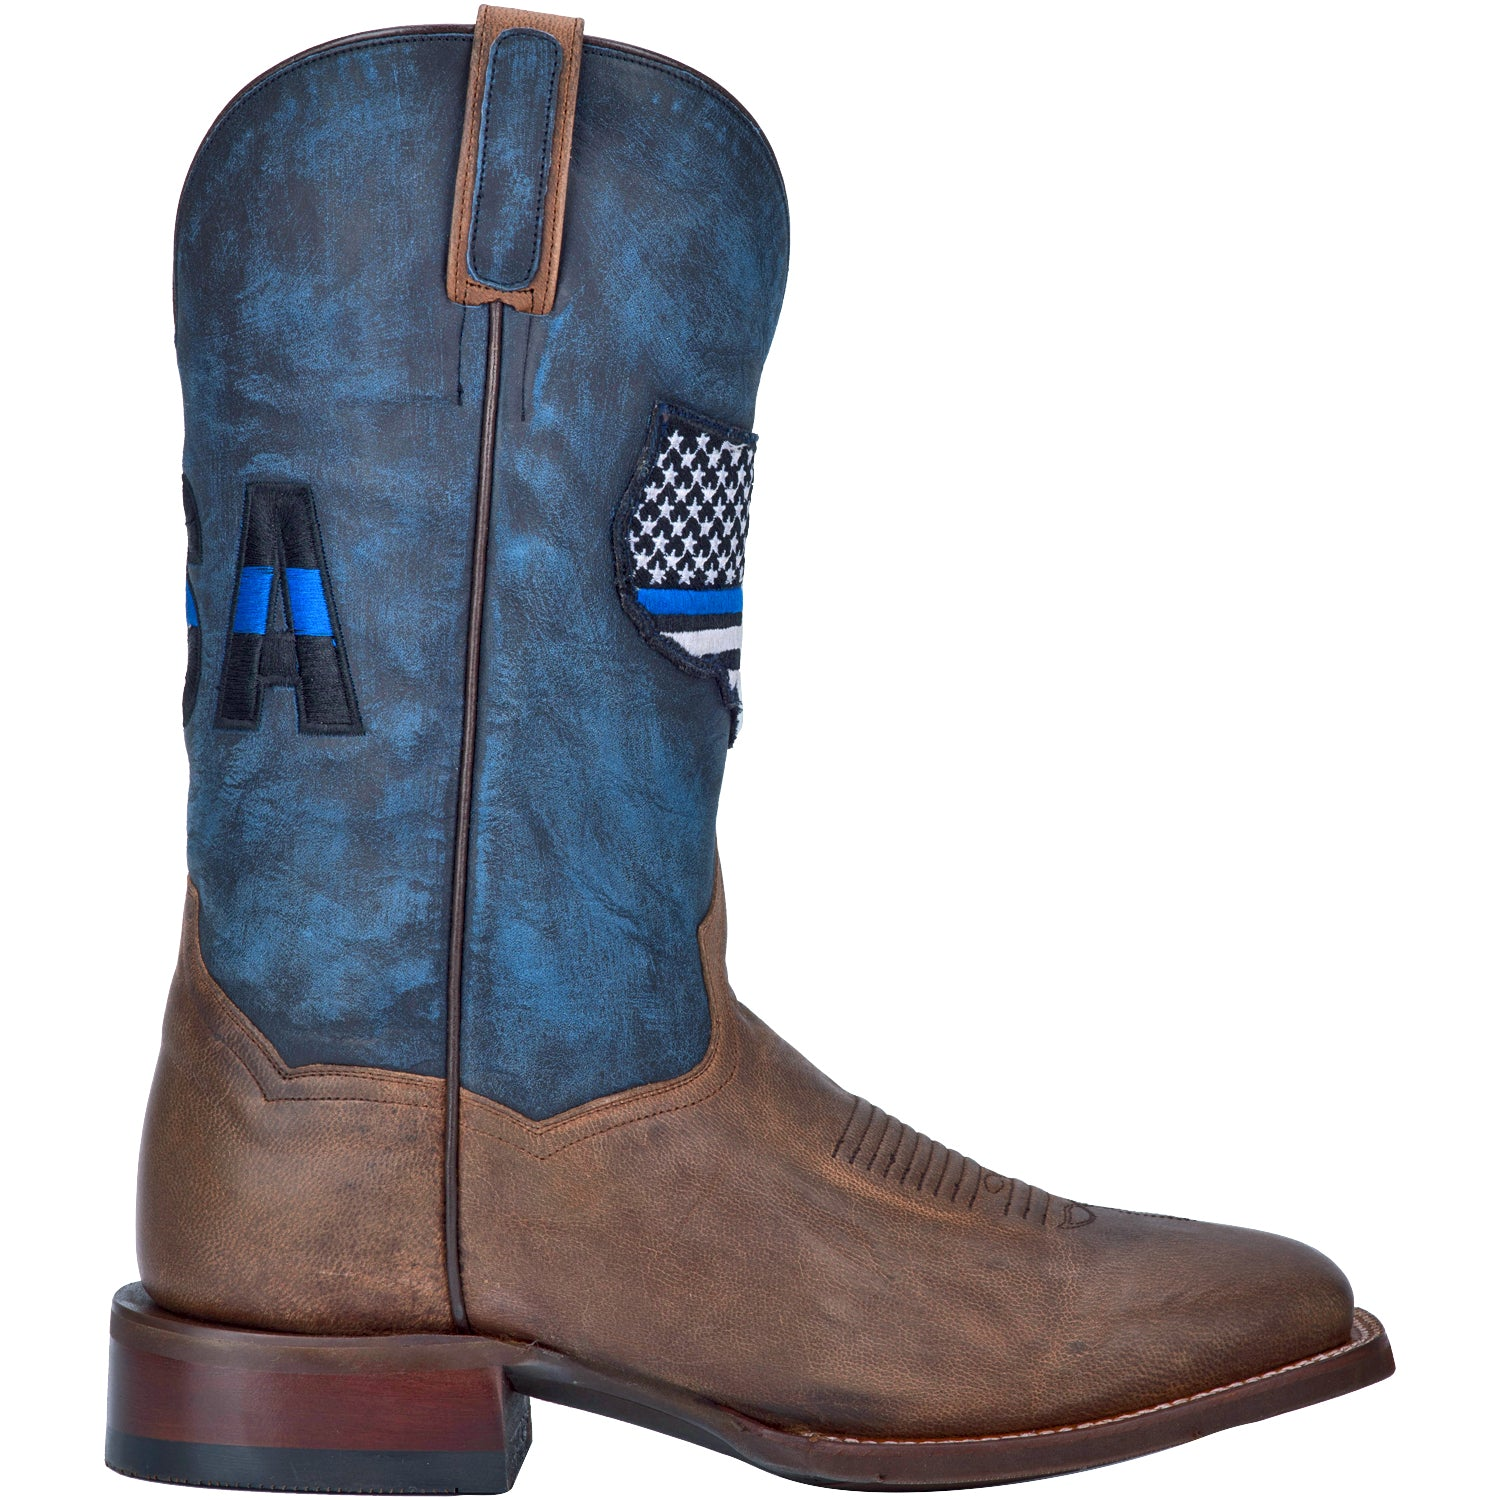 THIN BLUE LINE LEATHER BOOT 4197236113450